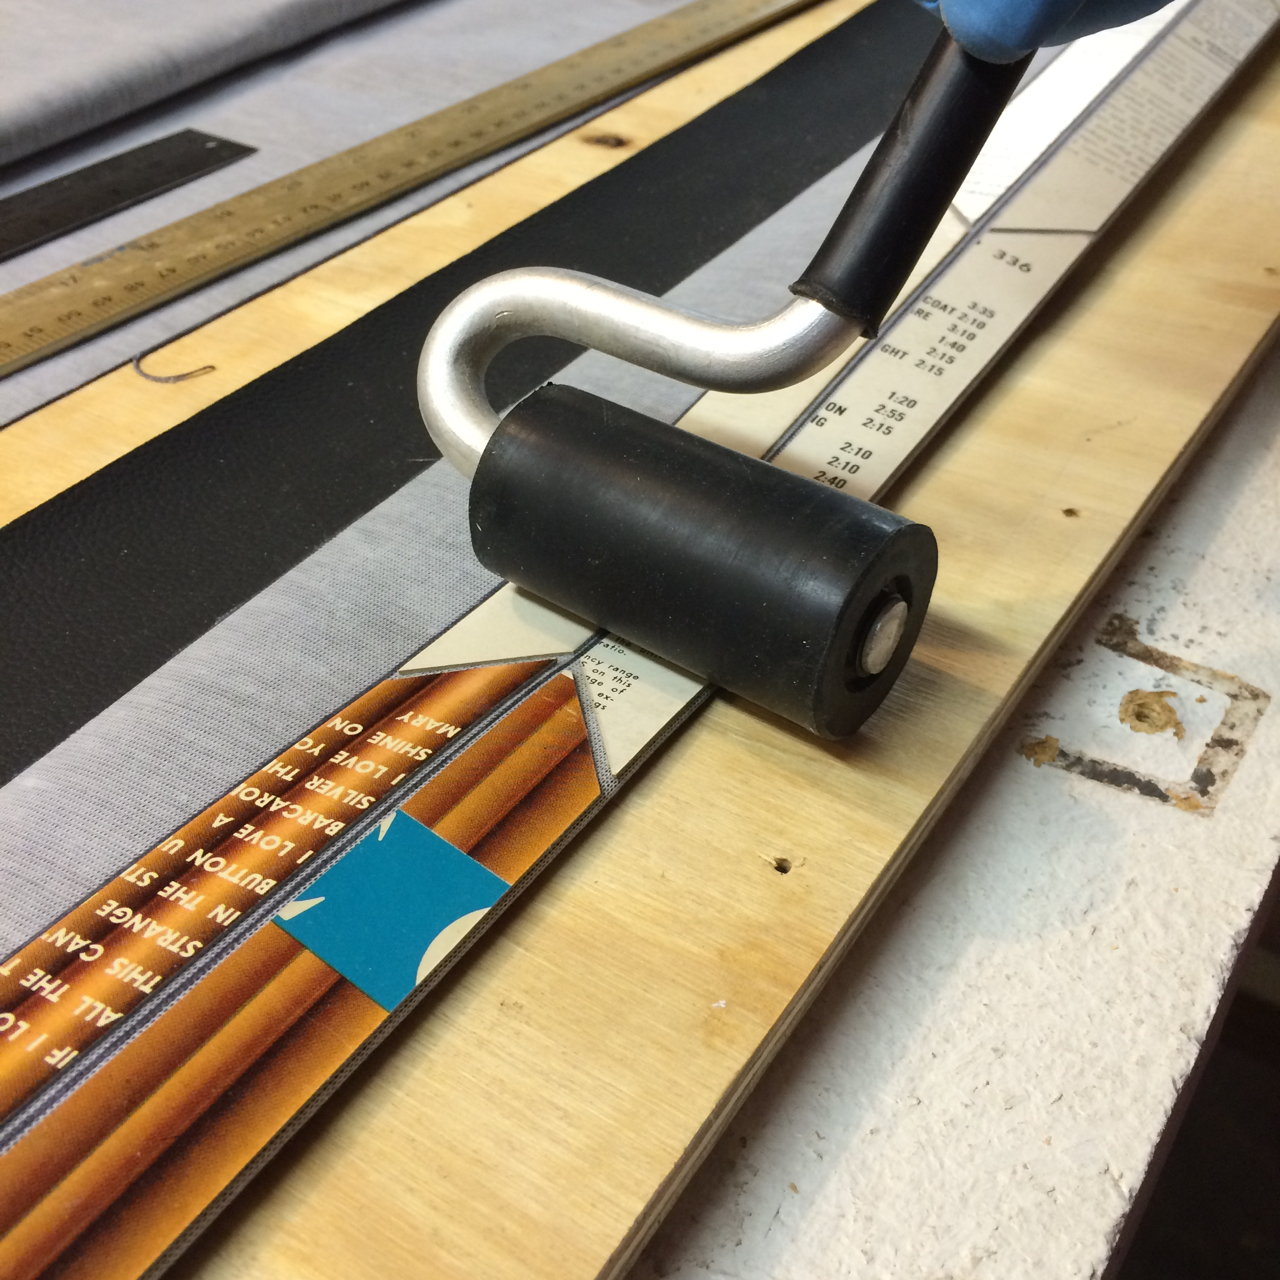 Gluing stiffeners down to vinyl for bellows